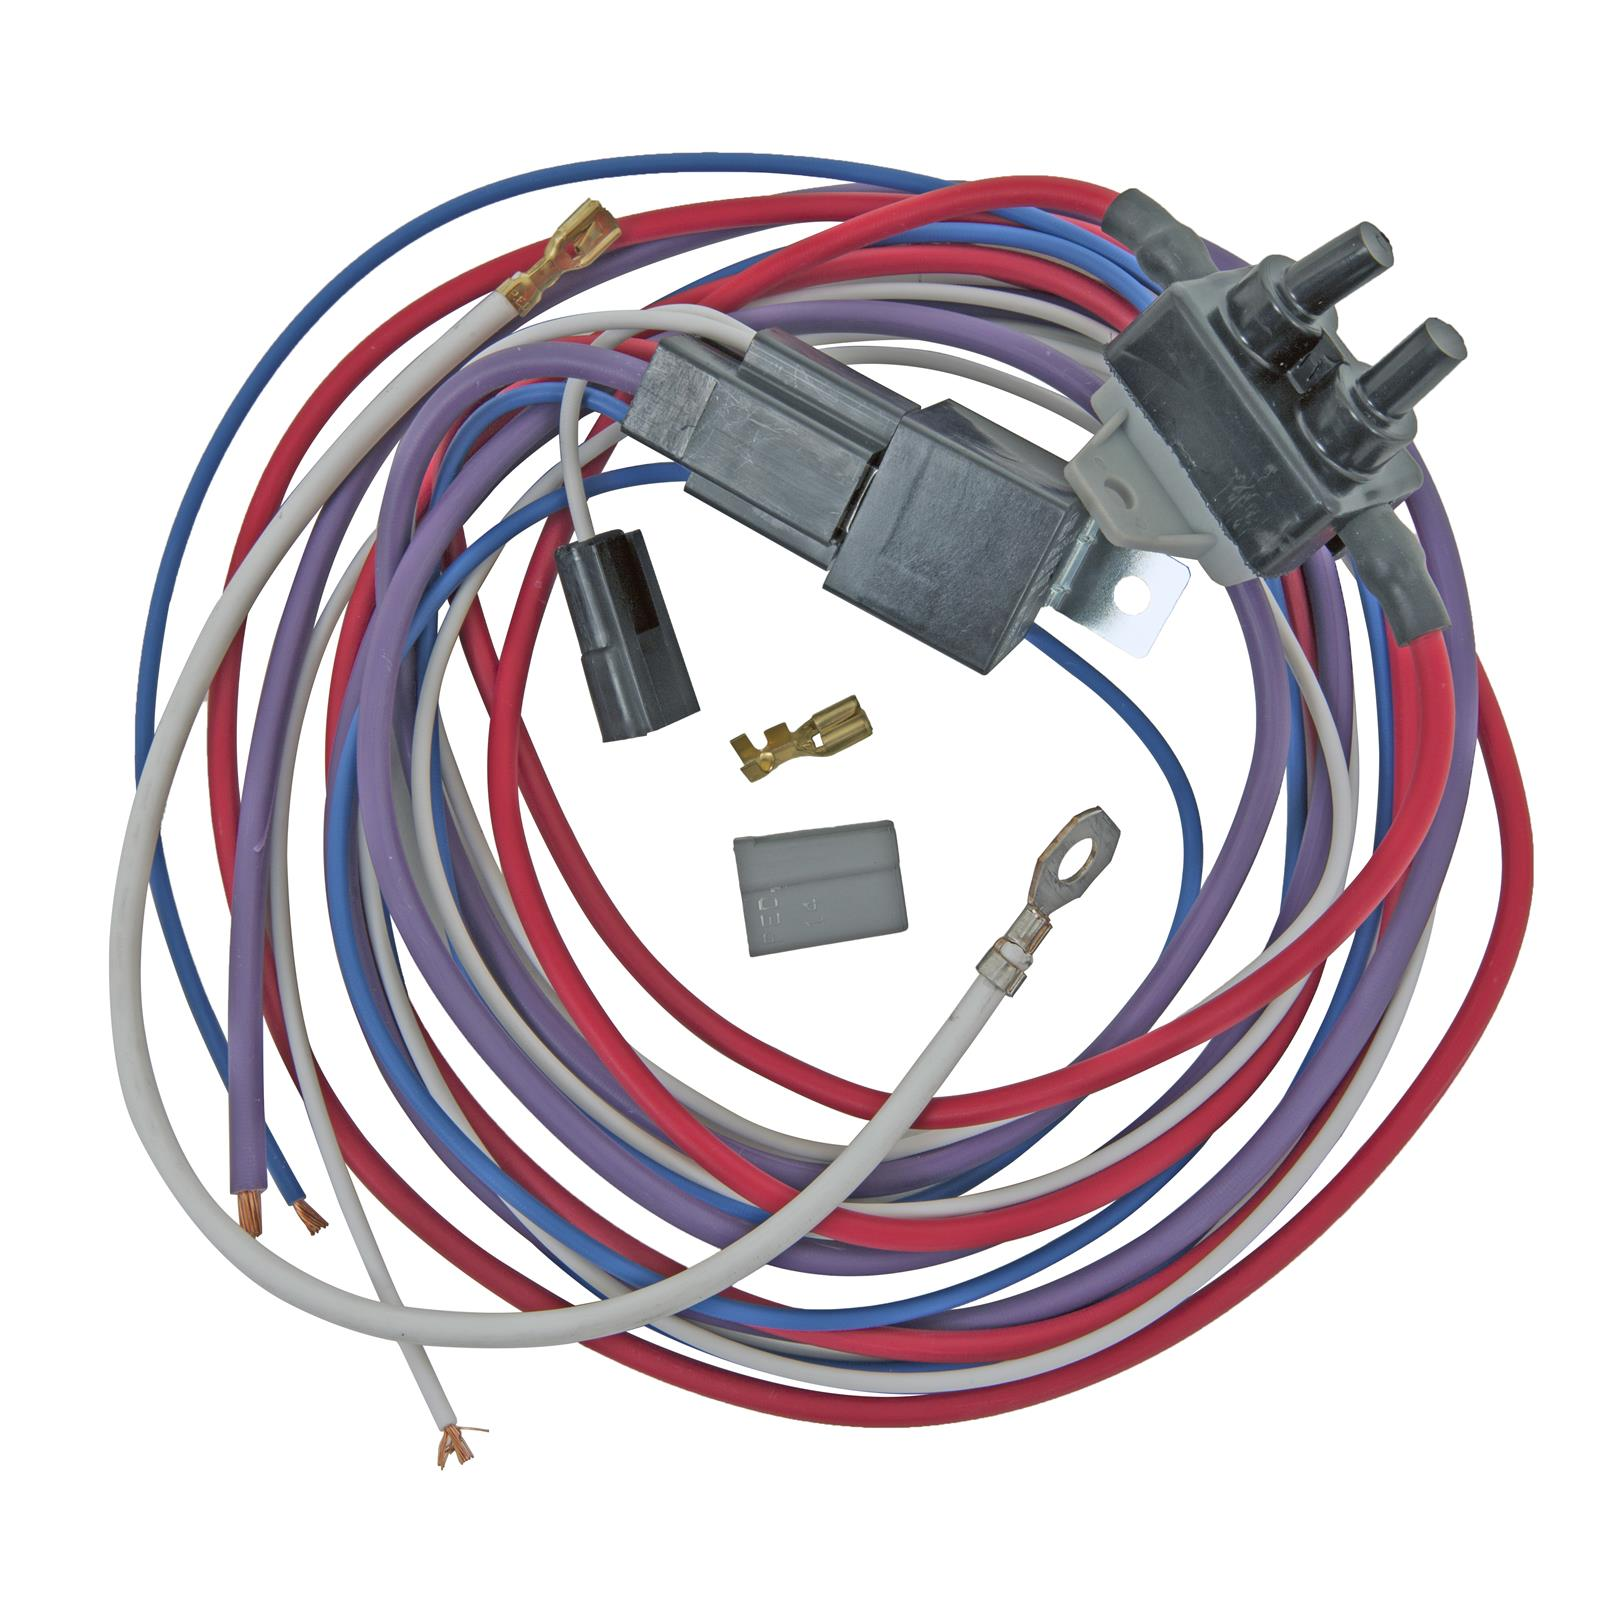 [DIAGRAM_3US]  Vintage Air Electric Fan Wiring Kits 23102-VUW | Vintage Electric Fan Wiring Diagram Air |  | Summit Racing